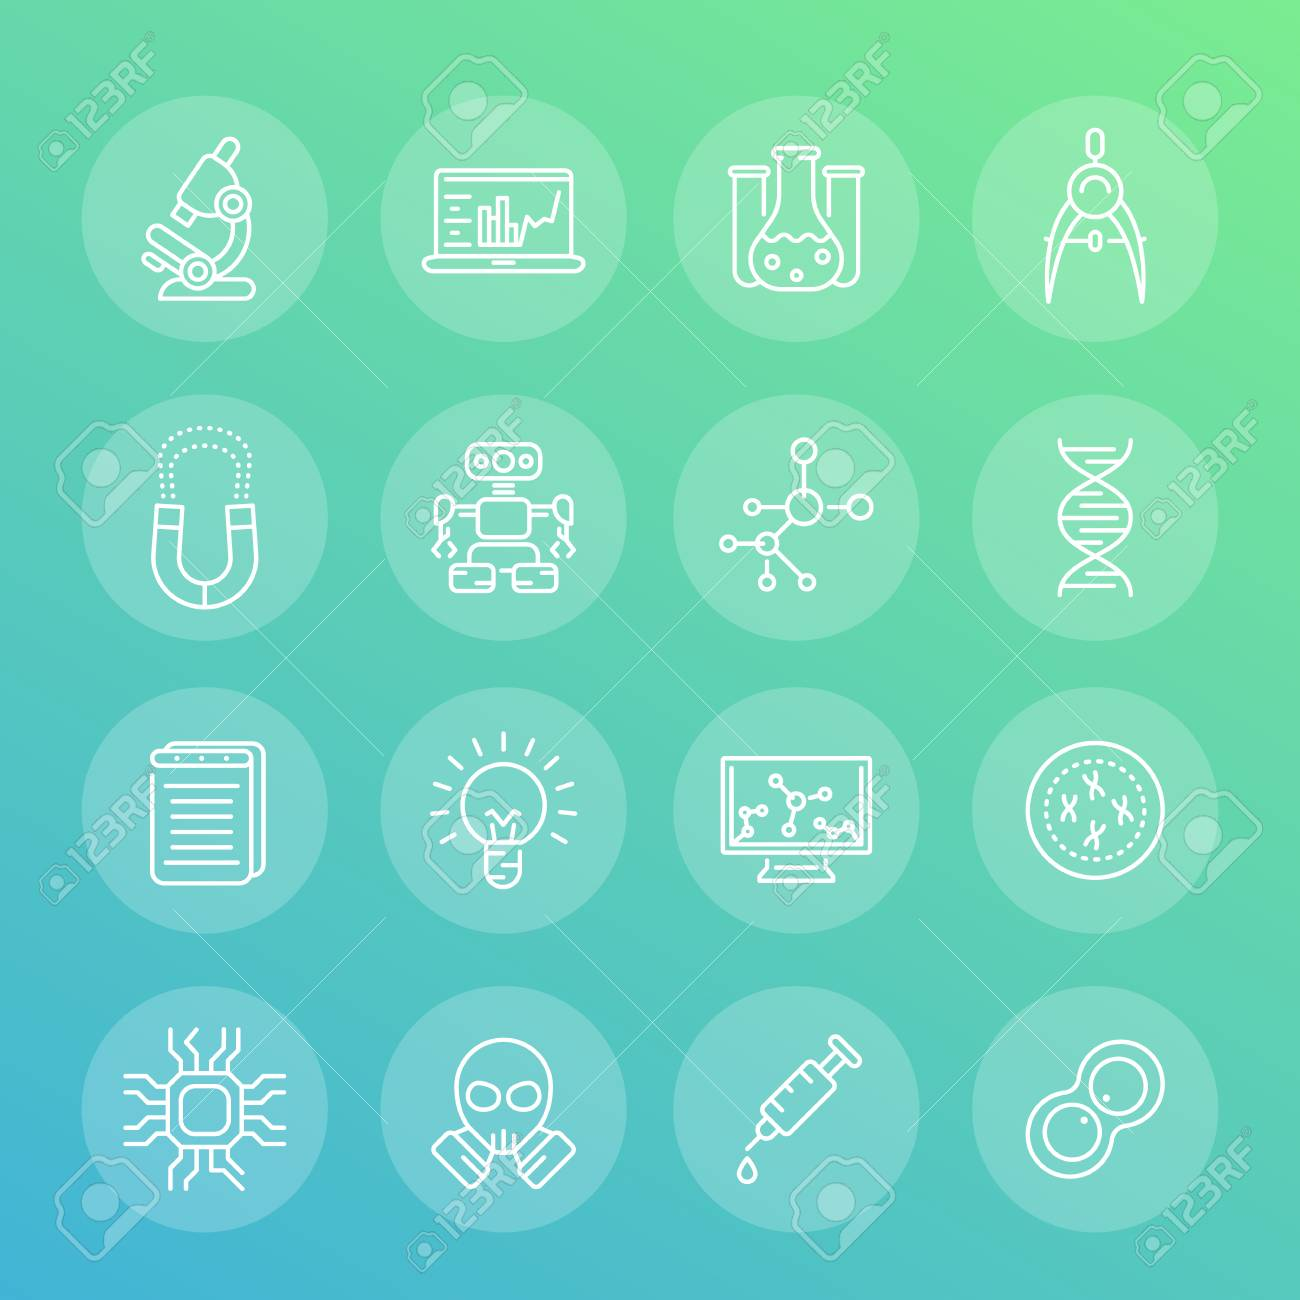 Science and research line icons set, robotics, mechanical engineering,